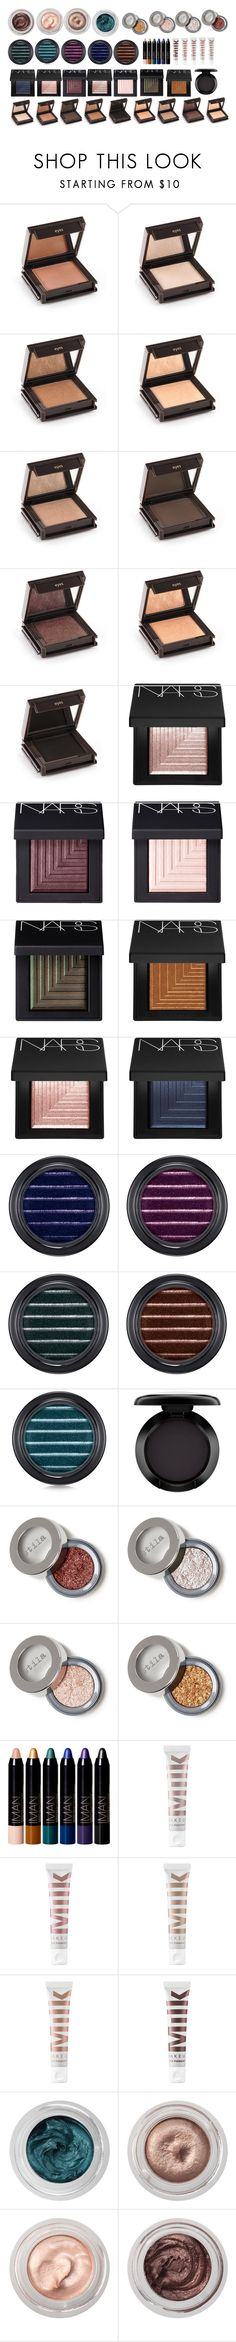 """""""Untitled #18"""" by katiasitems on Polyvore featuring Jouer, NARS Cosmetics, MAC Cosmetics, Iman, MILK MAKEUP and Charlotte Tilbury"""